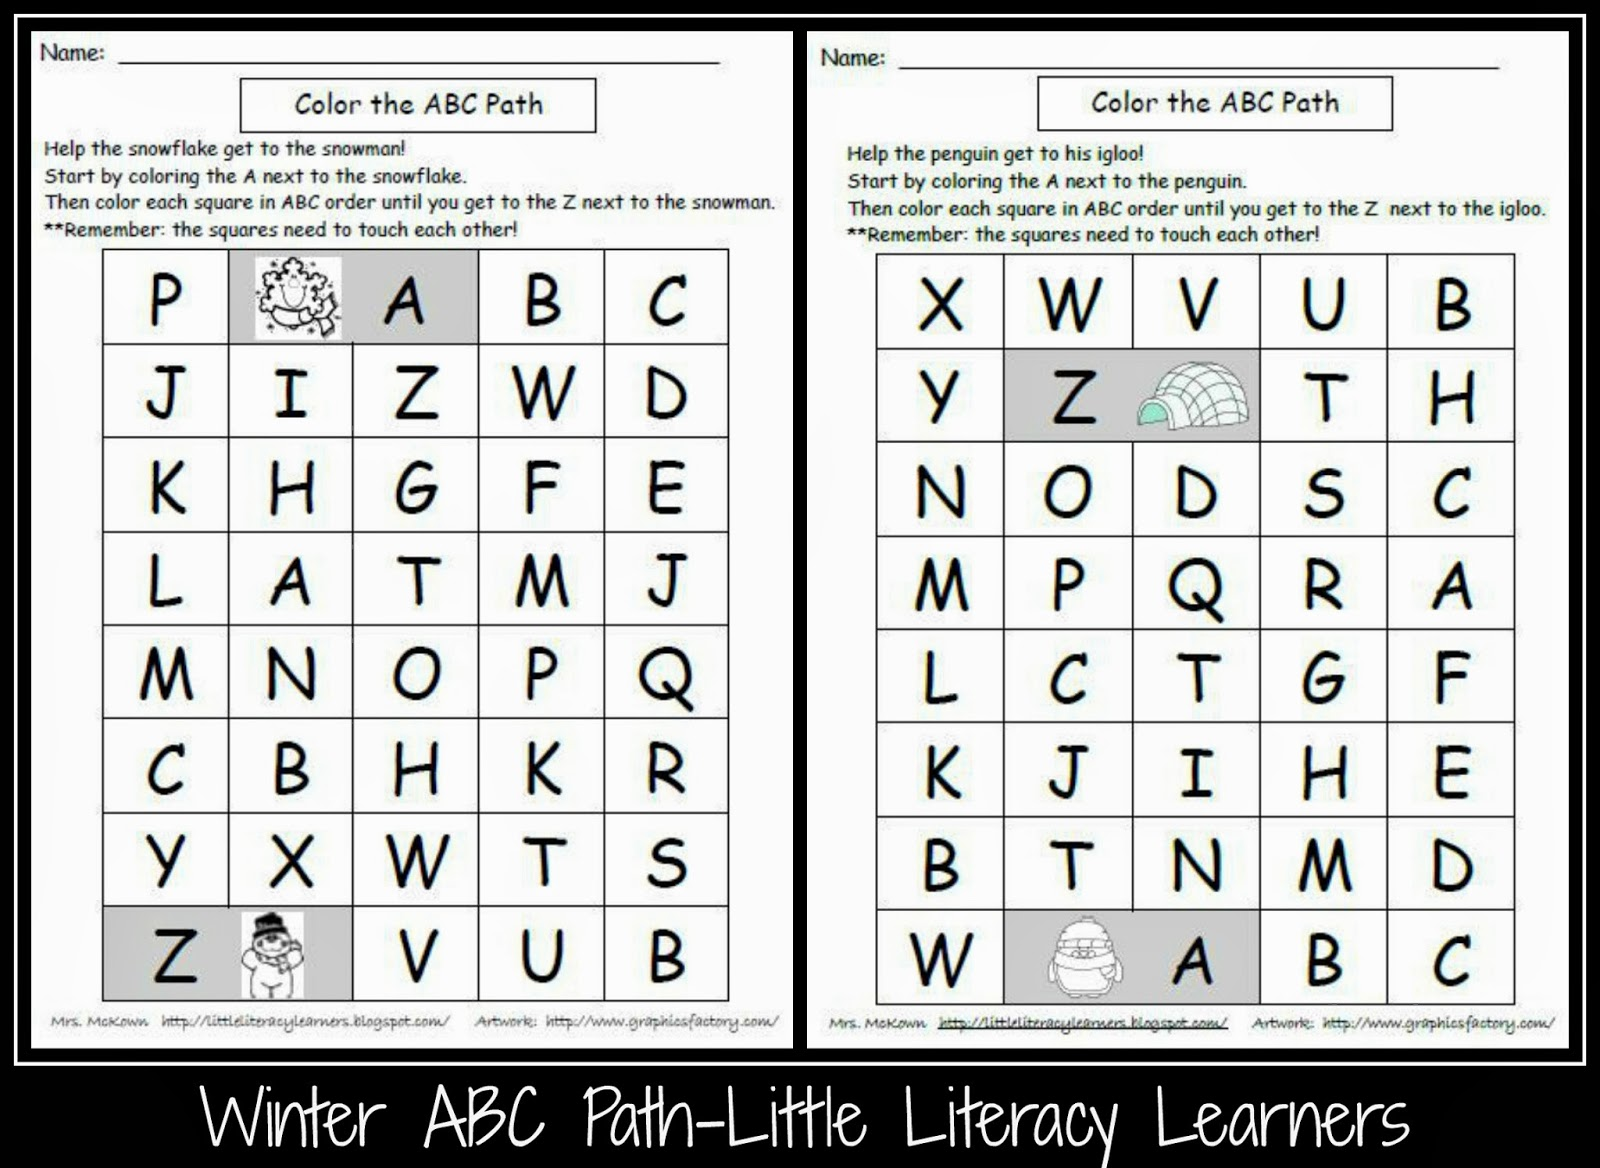 Little Literacy Learners Upper Case Letter Identification